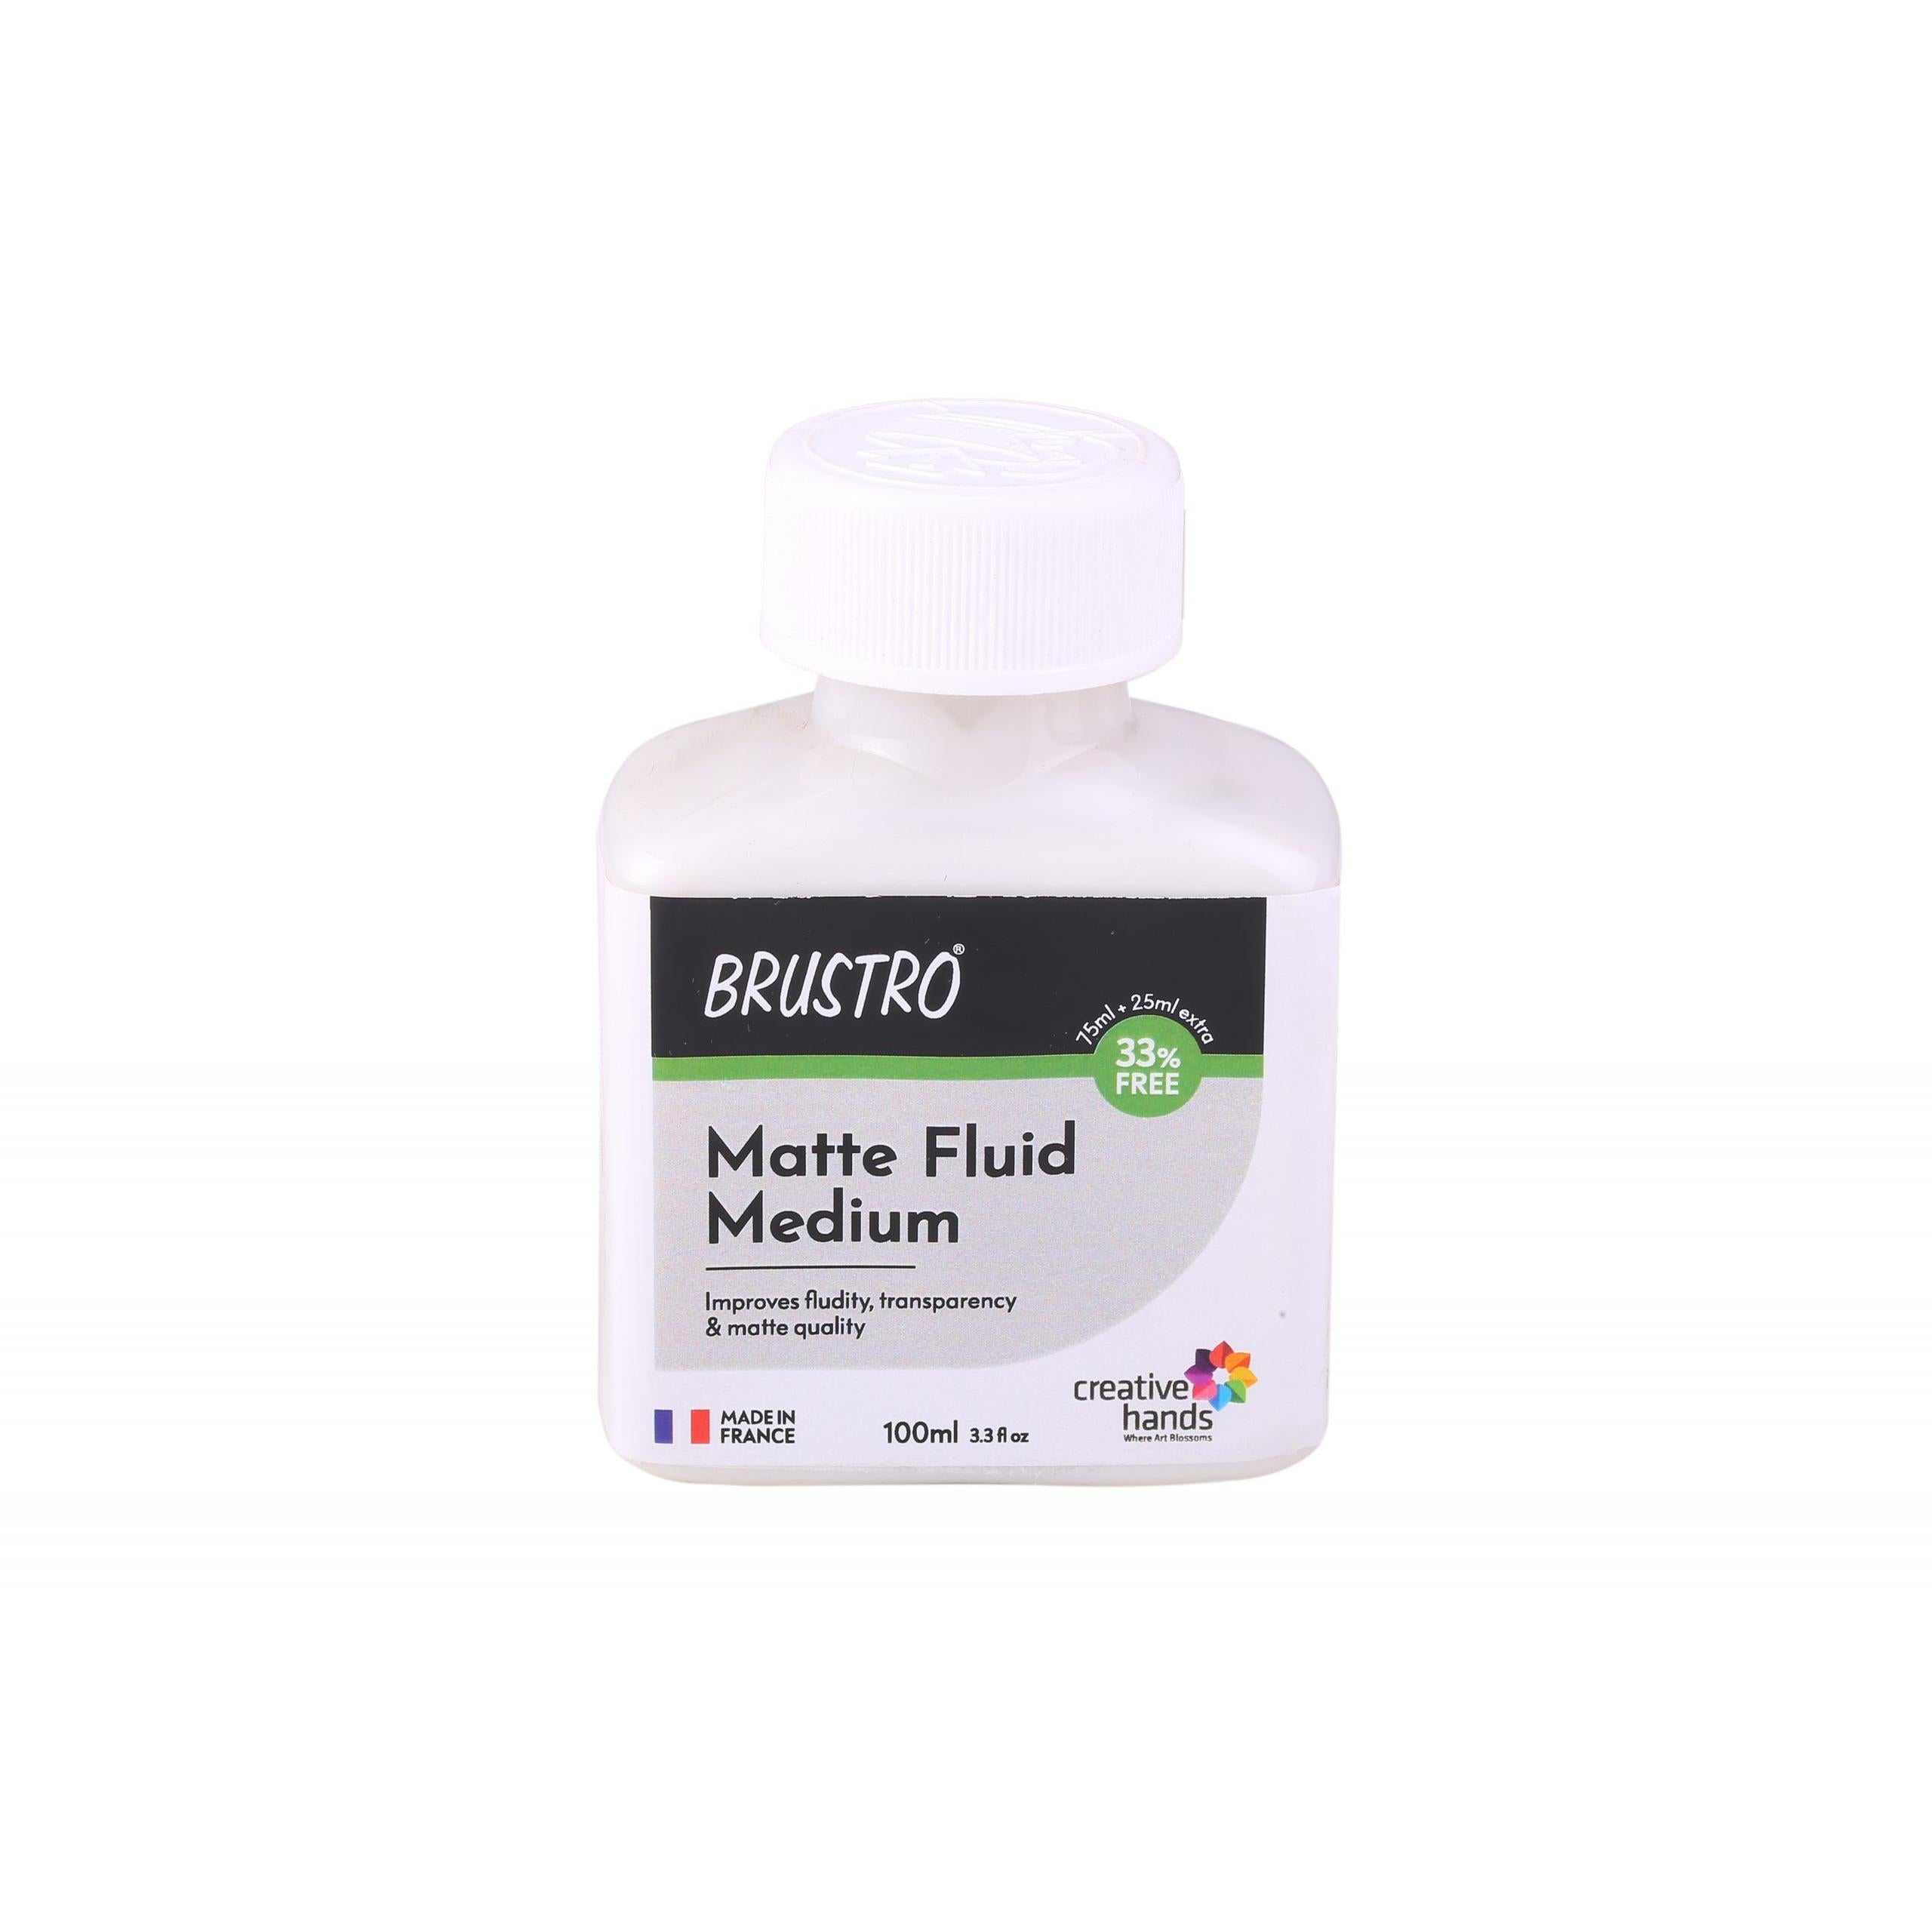 Brustro Professional Matte Fluid Medium 100ml (75ml + 25ml Free)